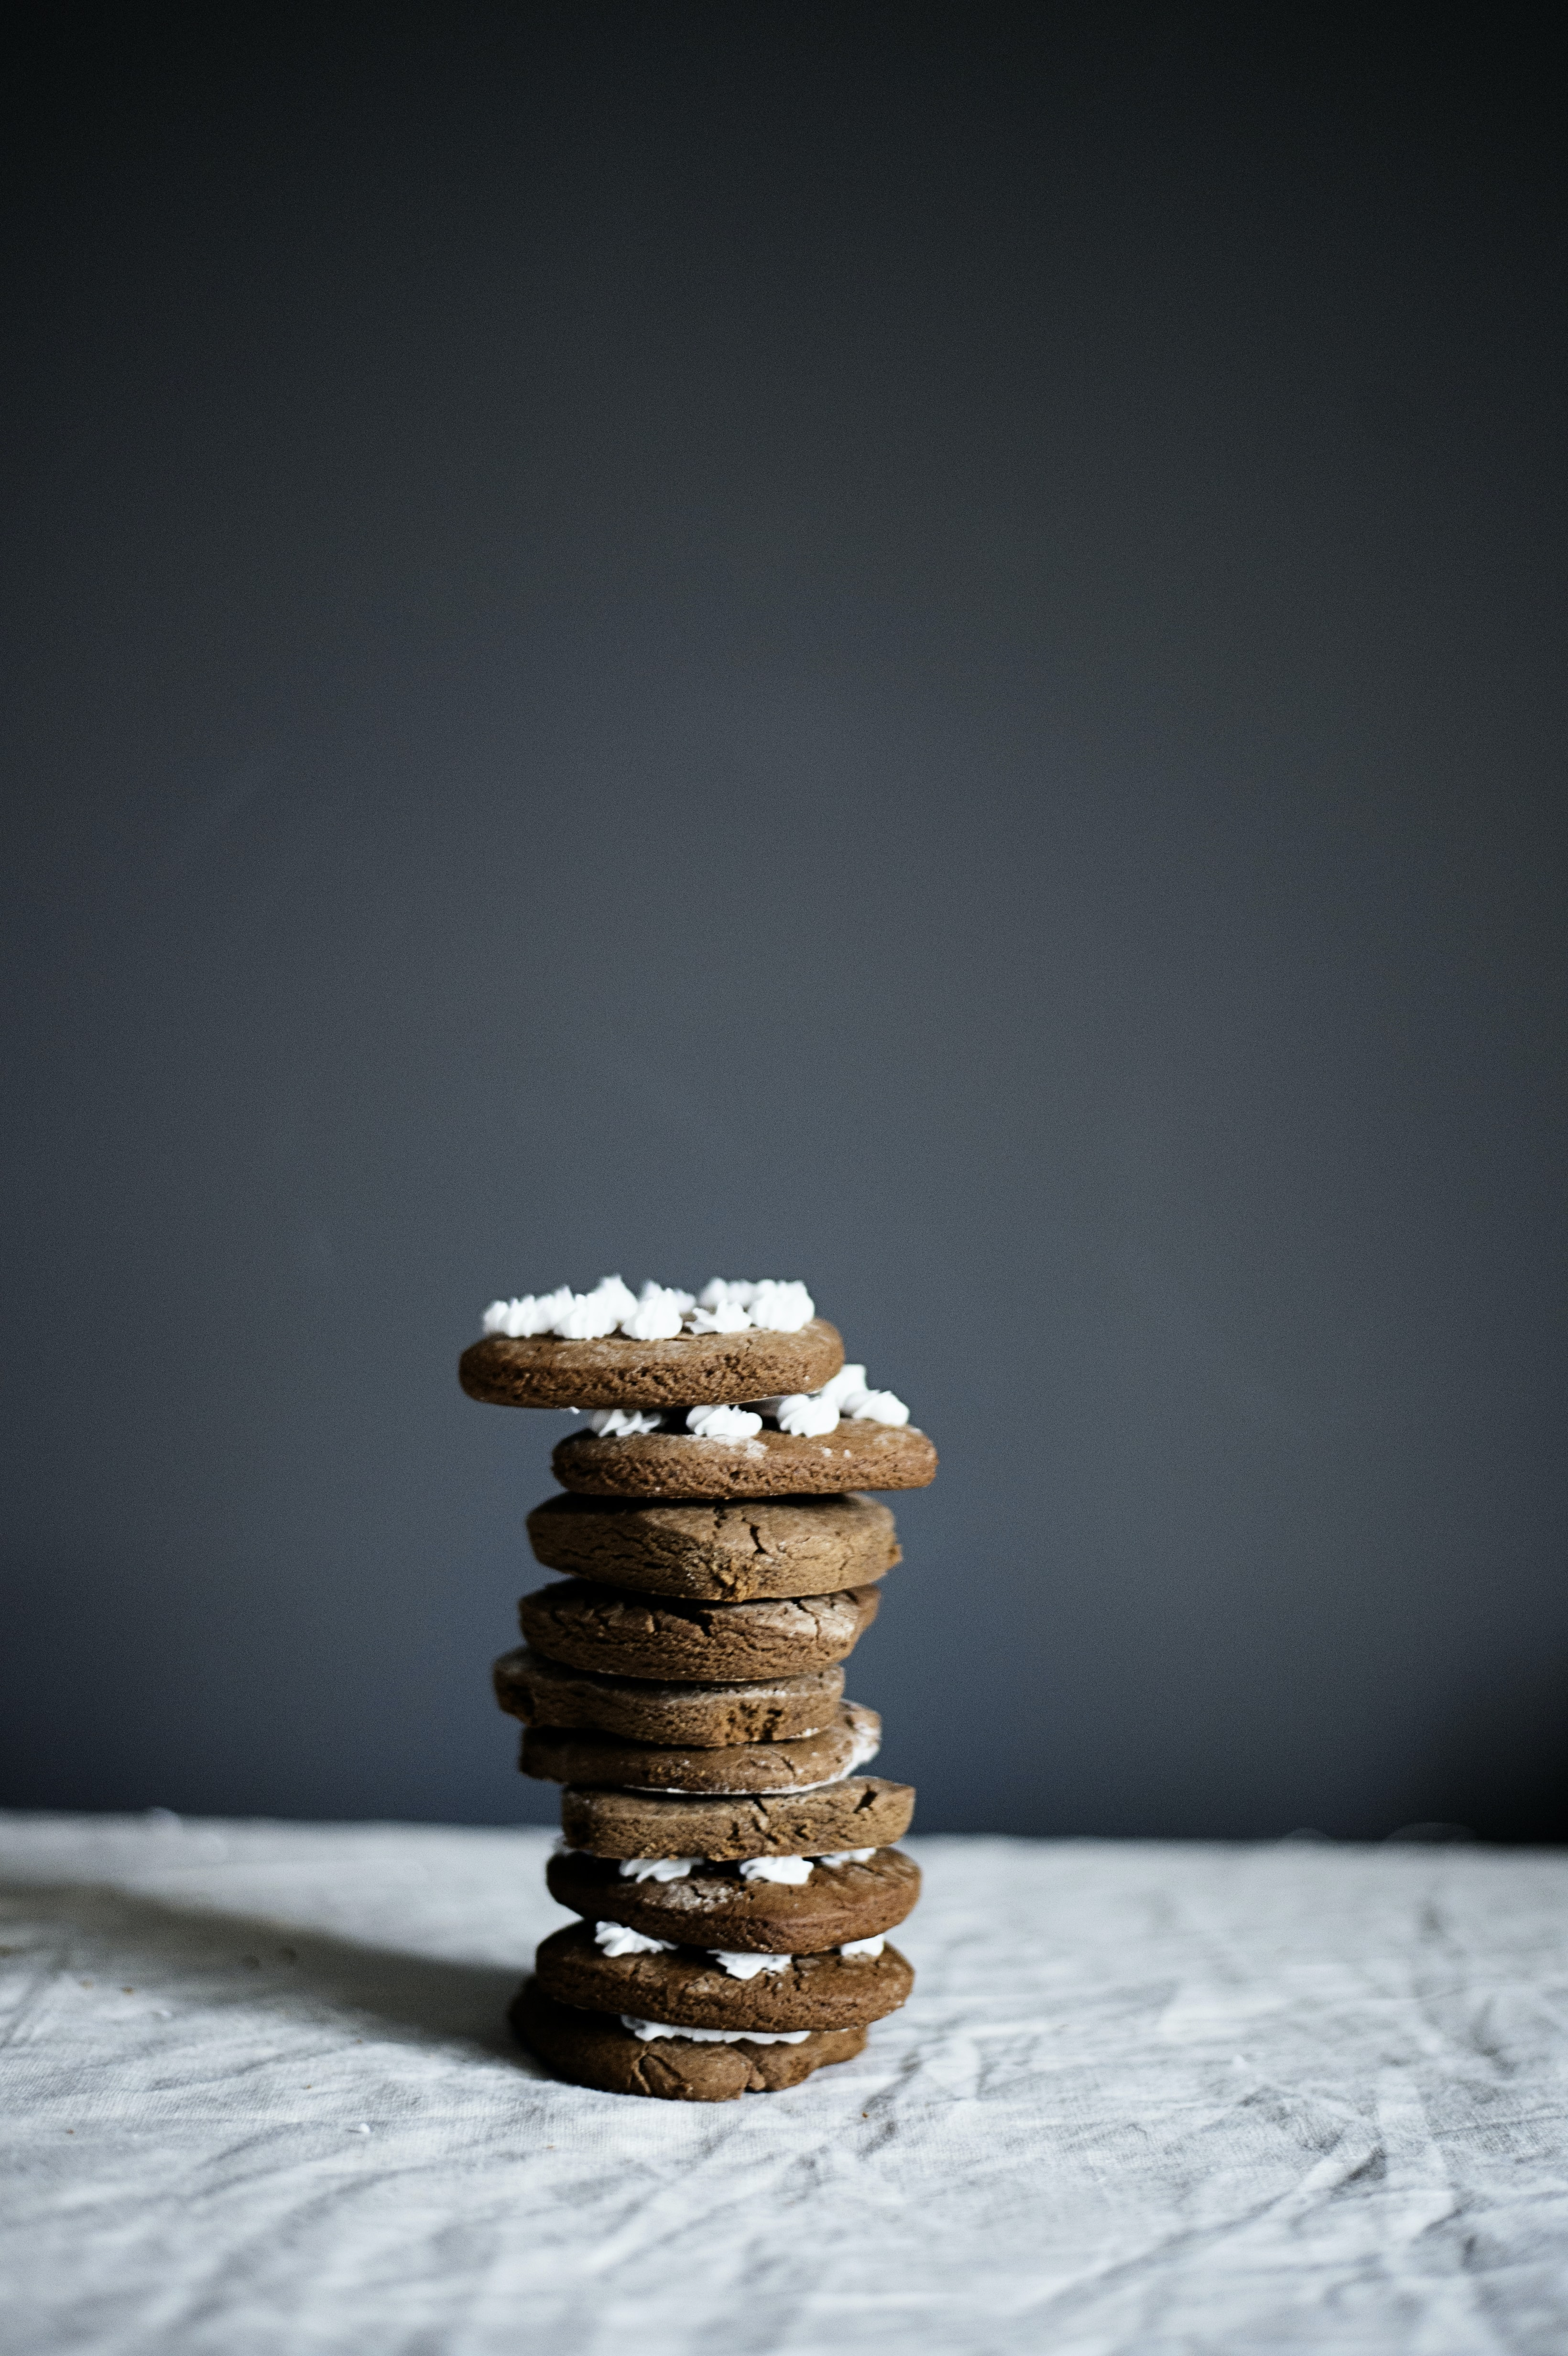 stacked cookies on grey surface